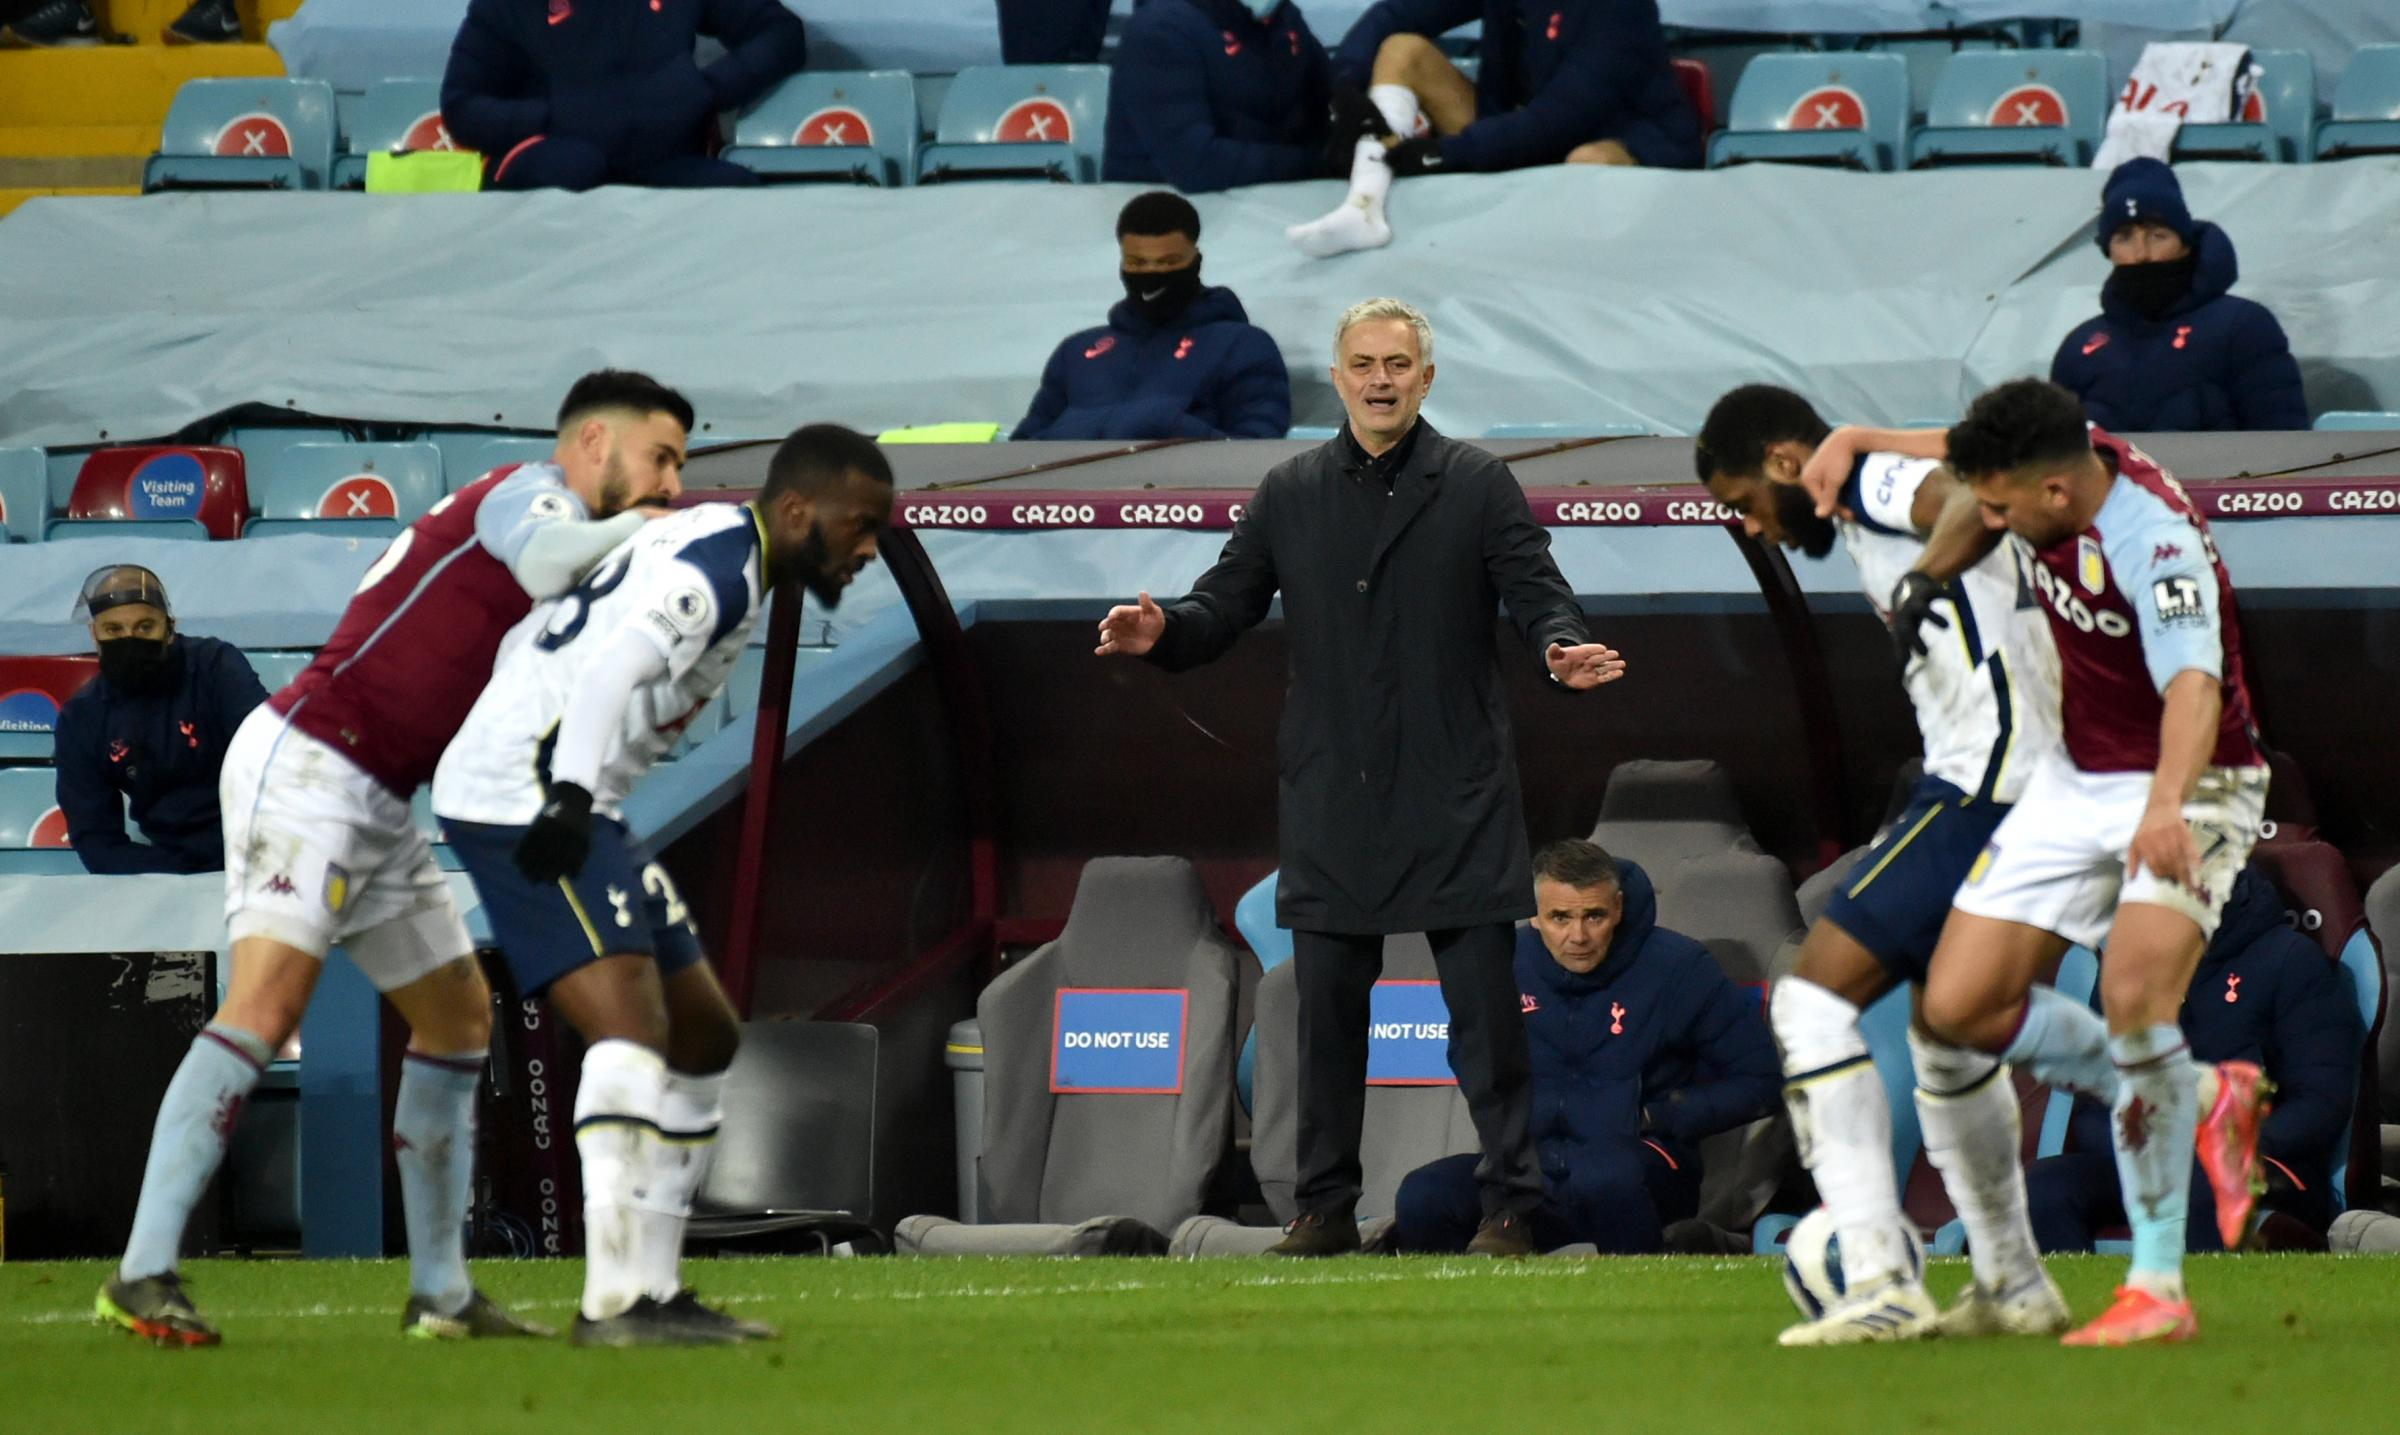 Tottenham Hotspur manager Jose Mourinho gestures from the touchline during the Premier League match at Villa Park, Birmingham. Picture date: Sunday March 21, 2021.